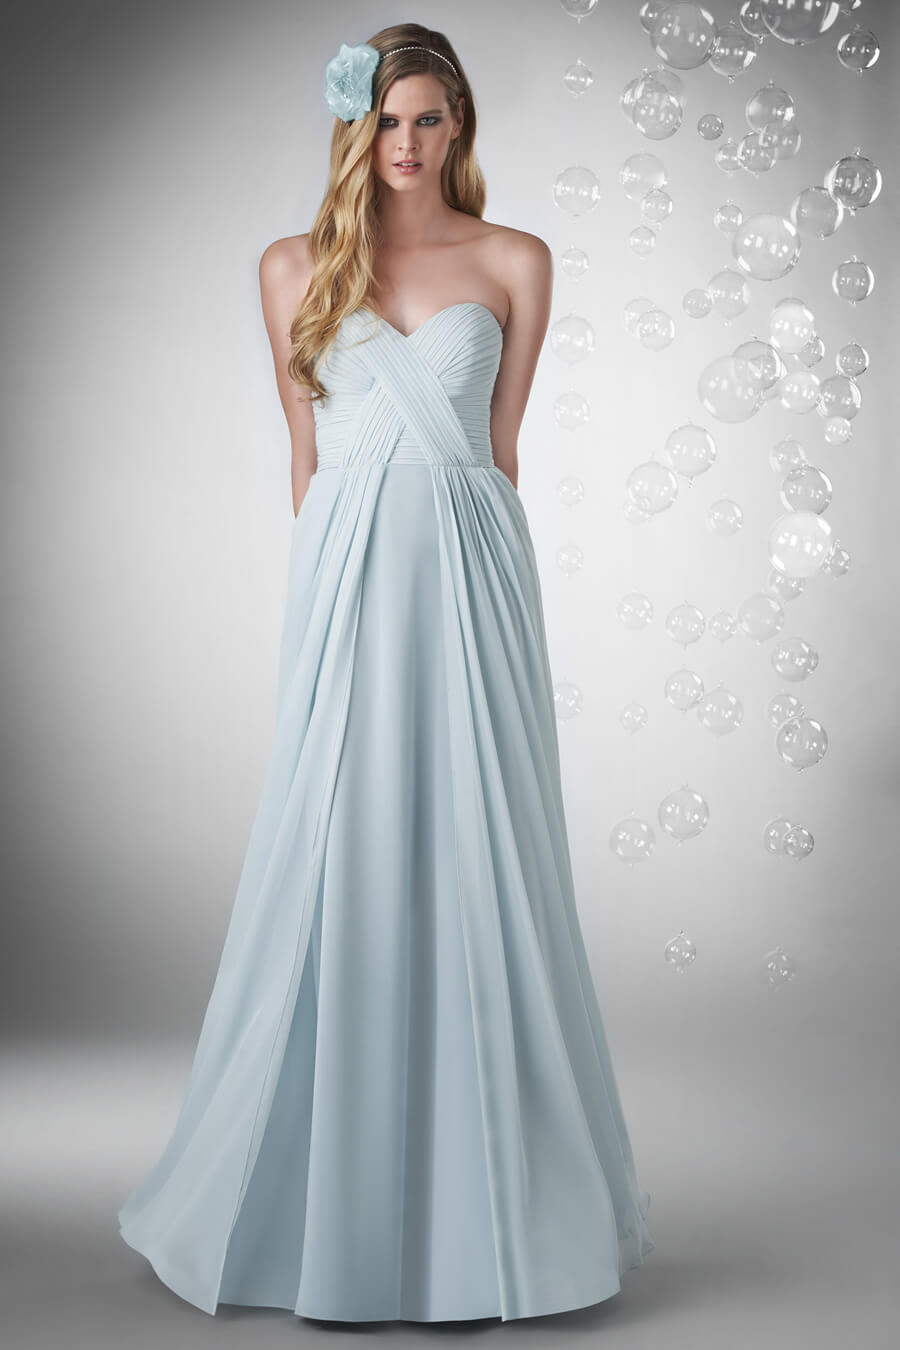 Style 720 bridesmaid dresses evening gowns flower girl sweetheart shirred criss cross bust with chiffon overlay skirt ombrellifo Images